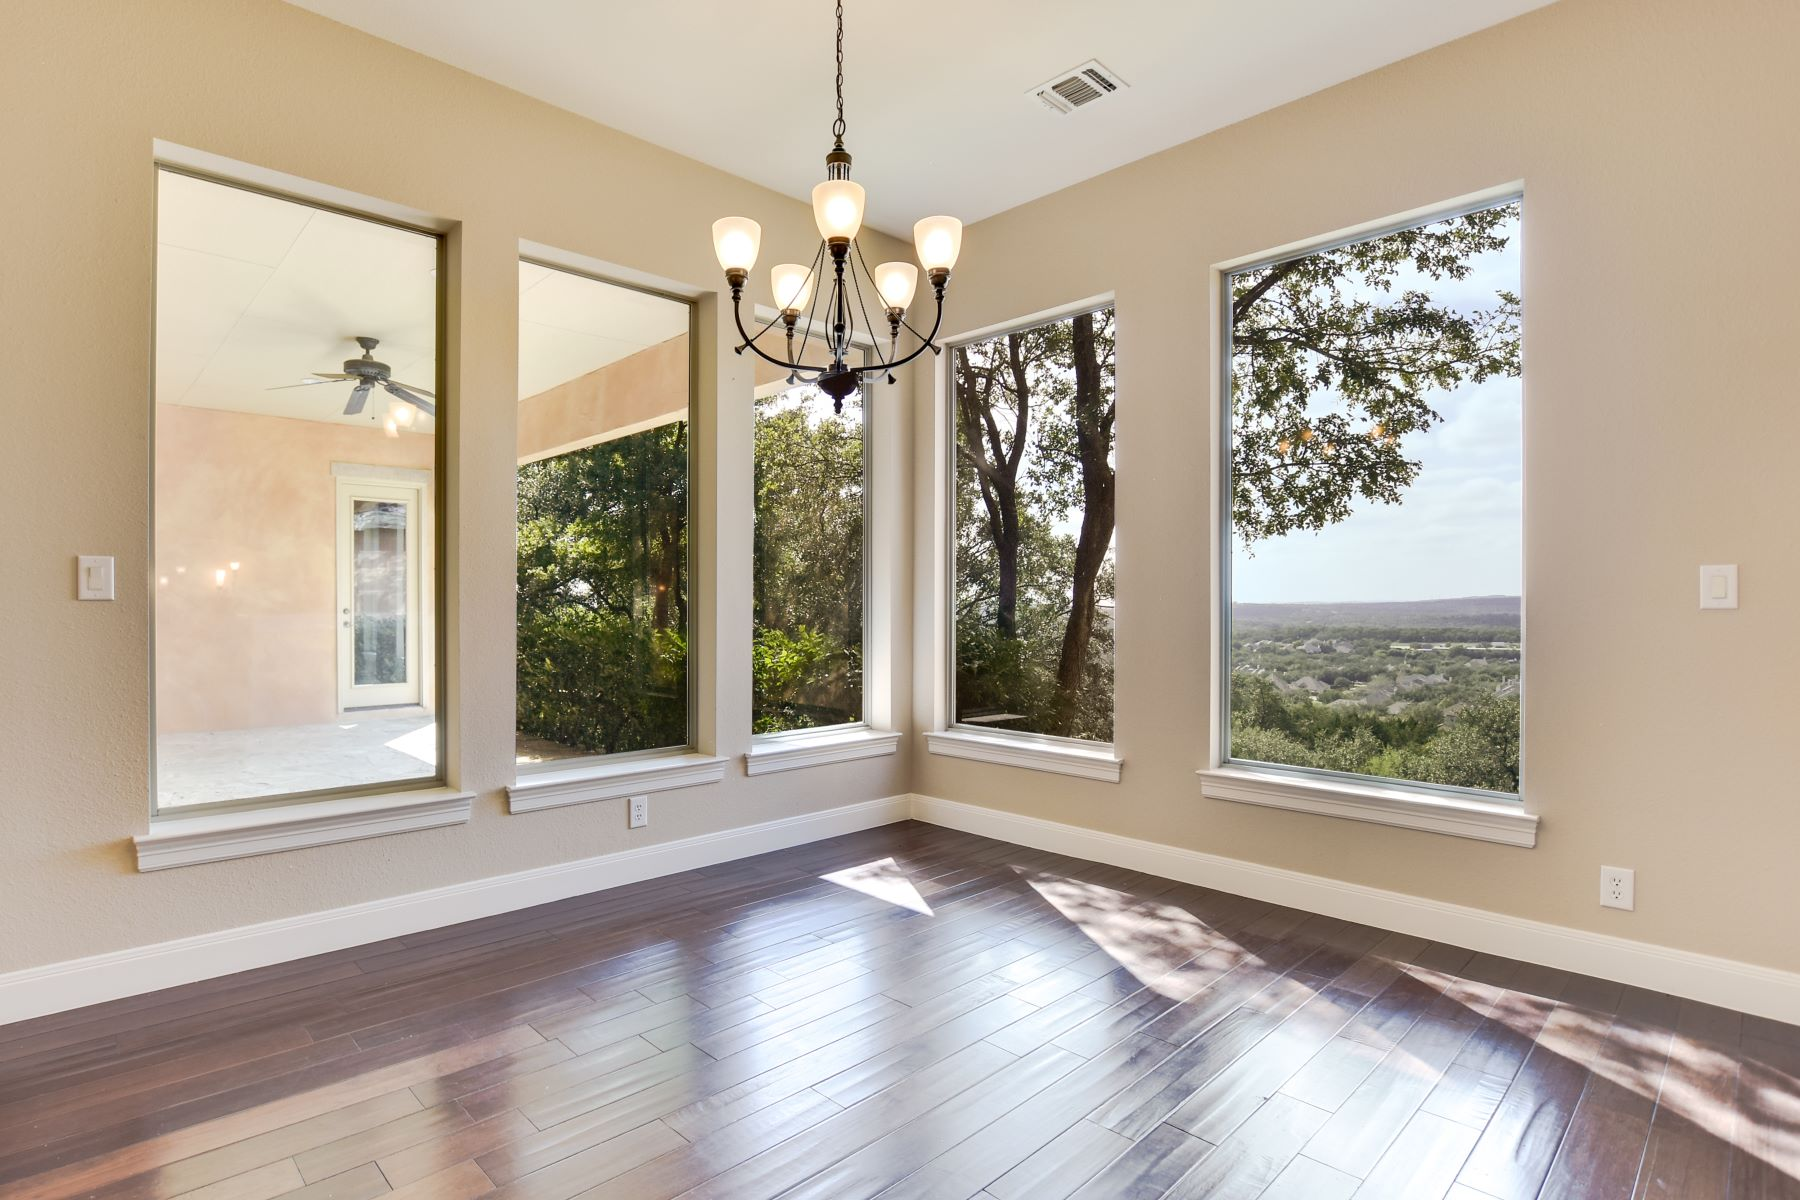 Additional photo for property listing at Private Estate in The Pinnacle 20403 Terrabianca San Antonio, Texas 78258 United States